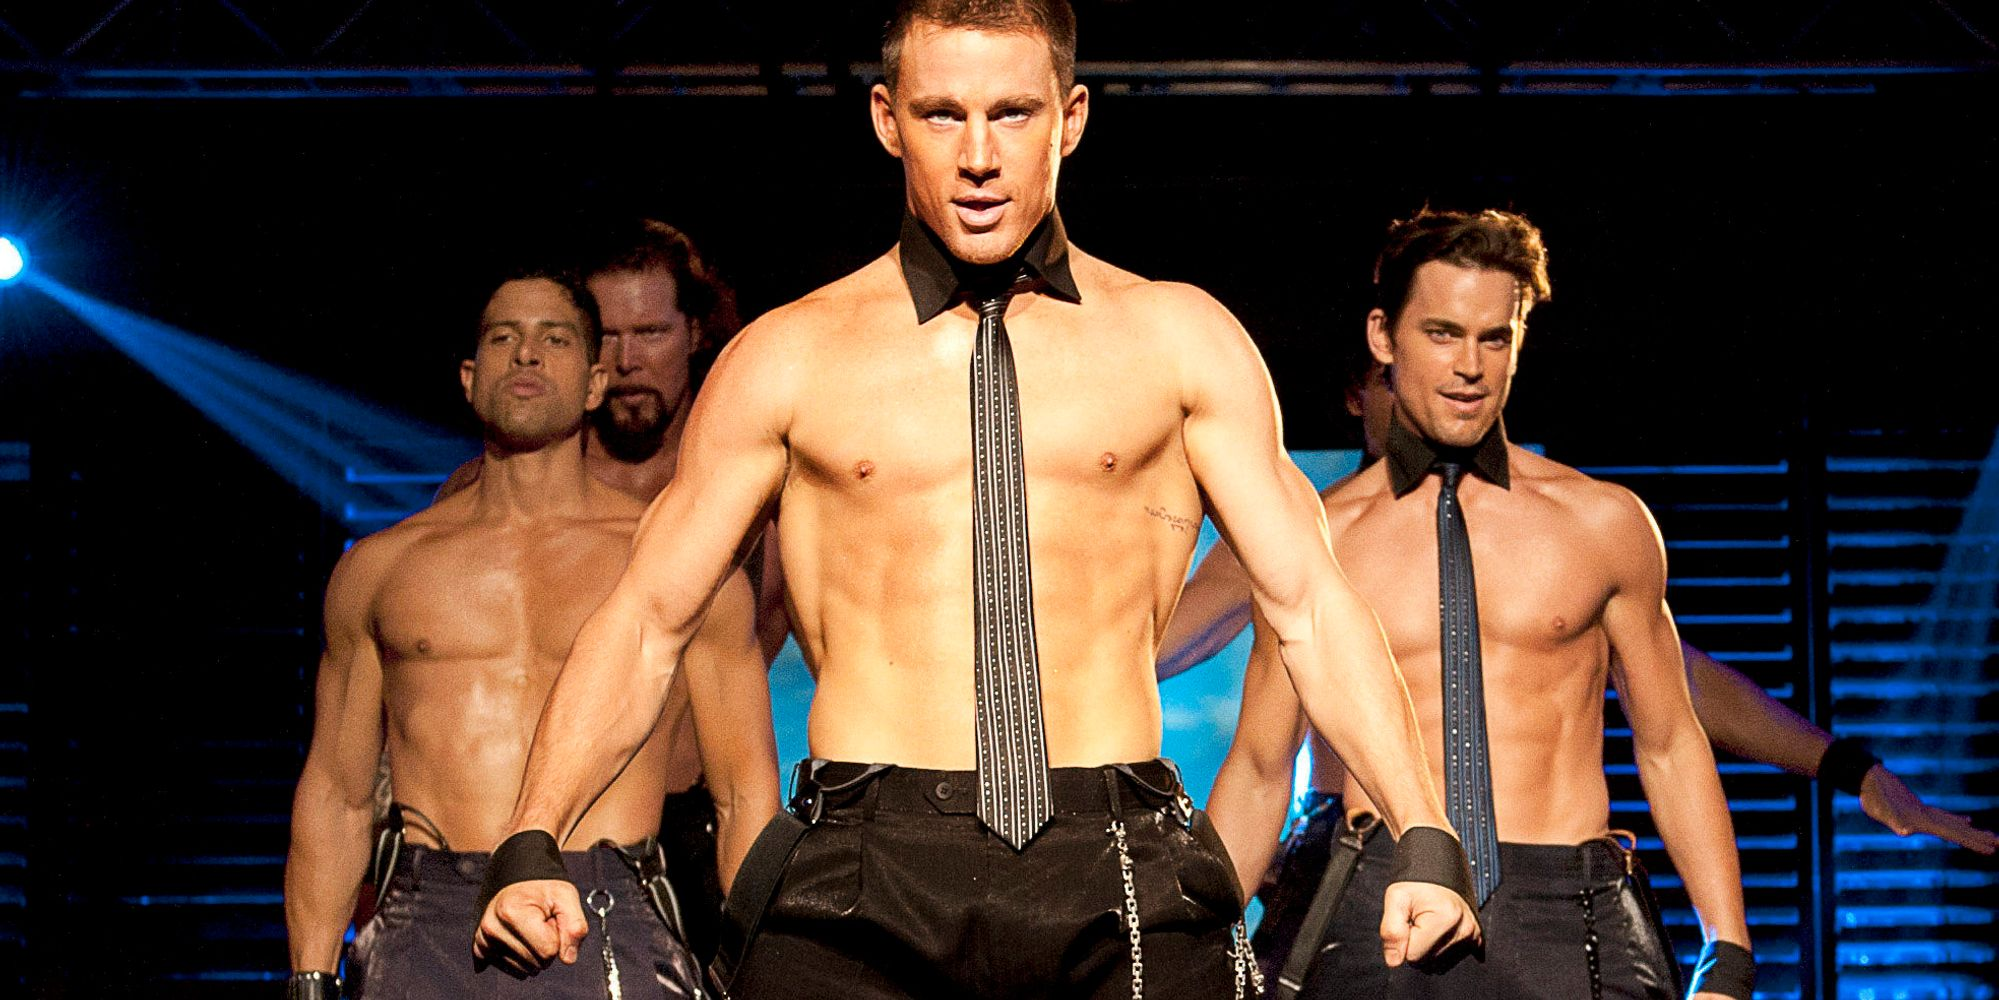 'Magic Mike' Live Show Announced By Channing Tatum In Video Featuring LOTS Of Shirtless Men